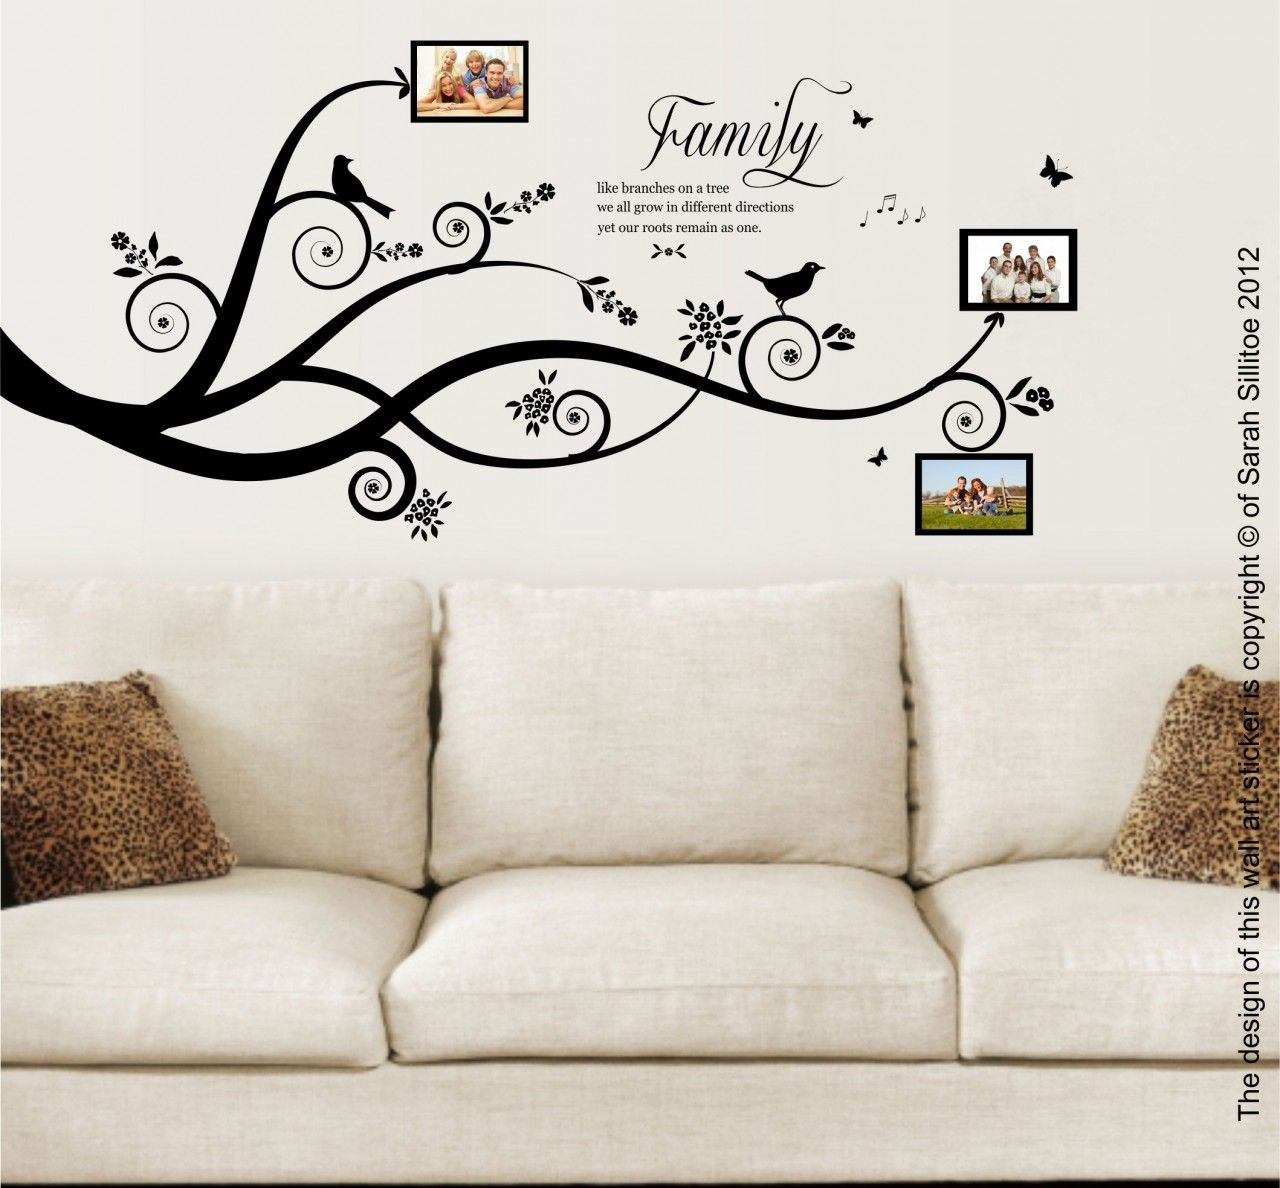 Family Tree Vinyl Wall Art Sticker Decal Family Tree Wall Art Family Tree Mural Sticker Wall Art